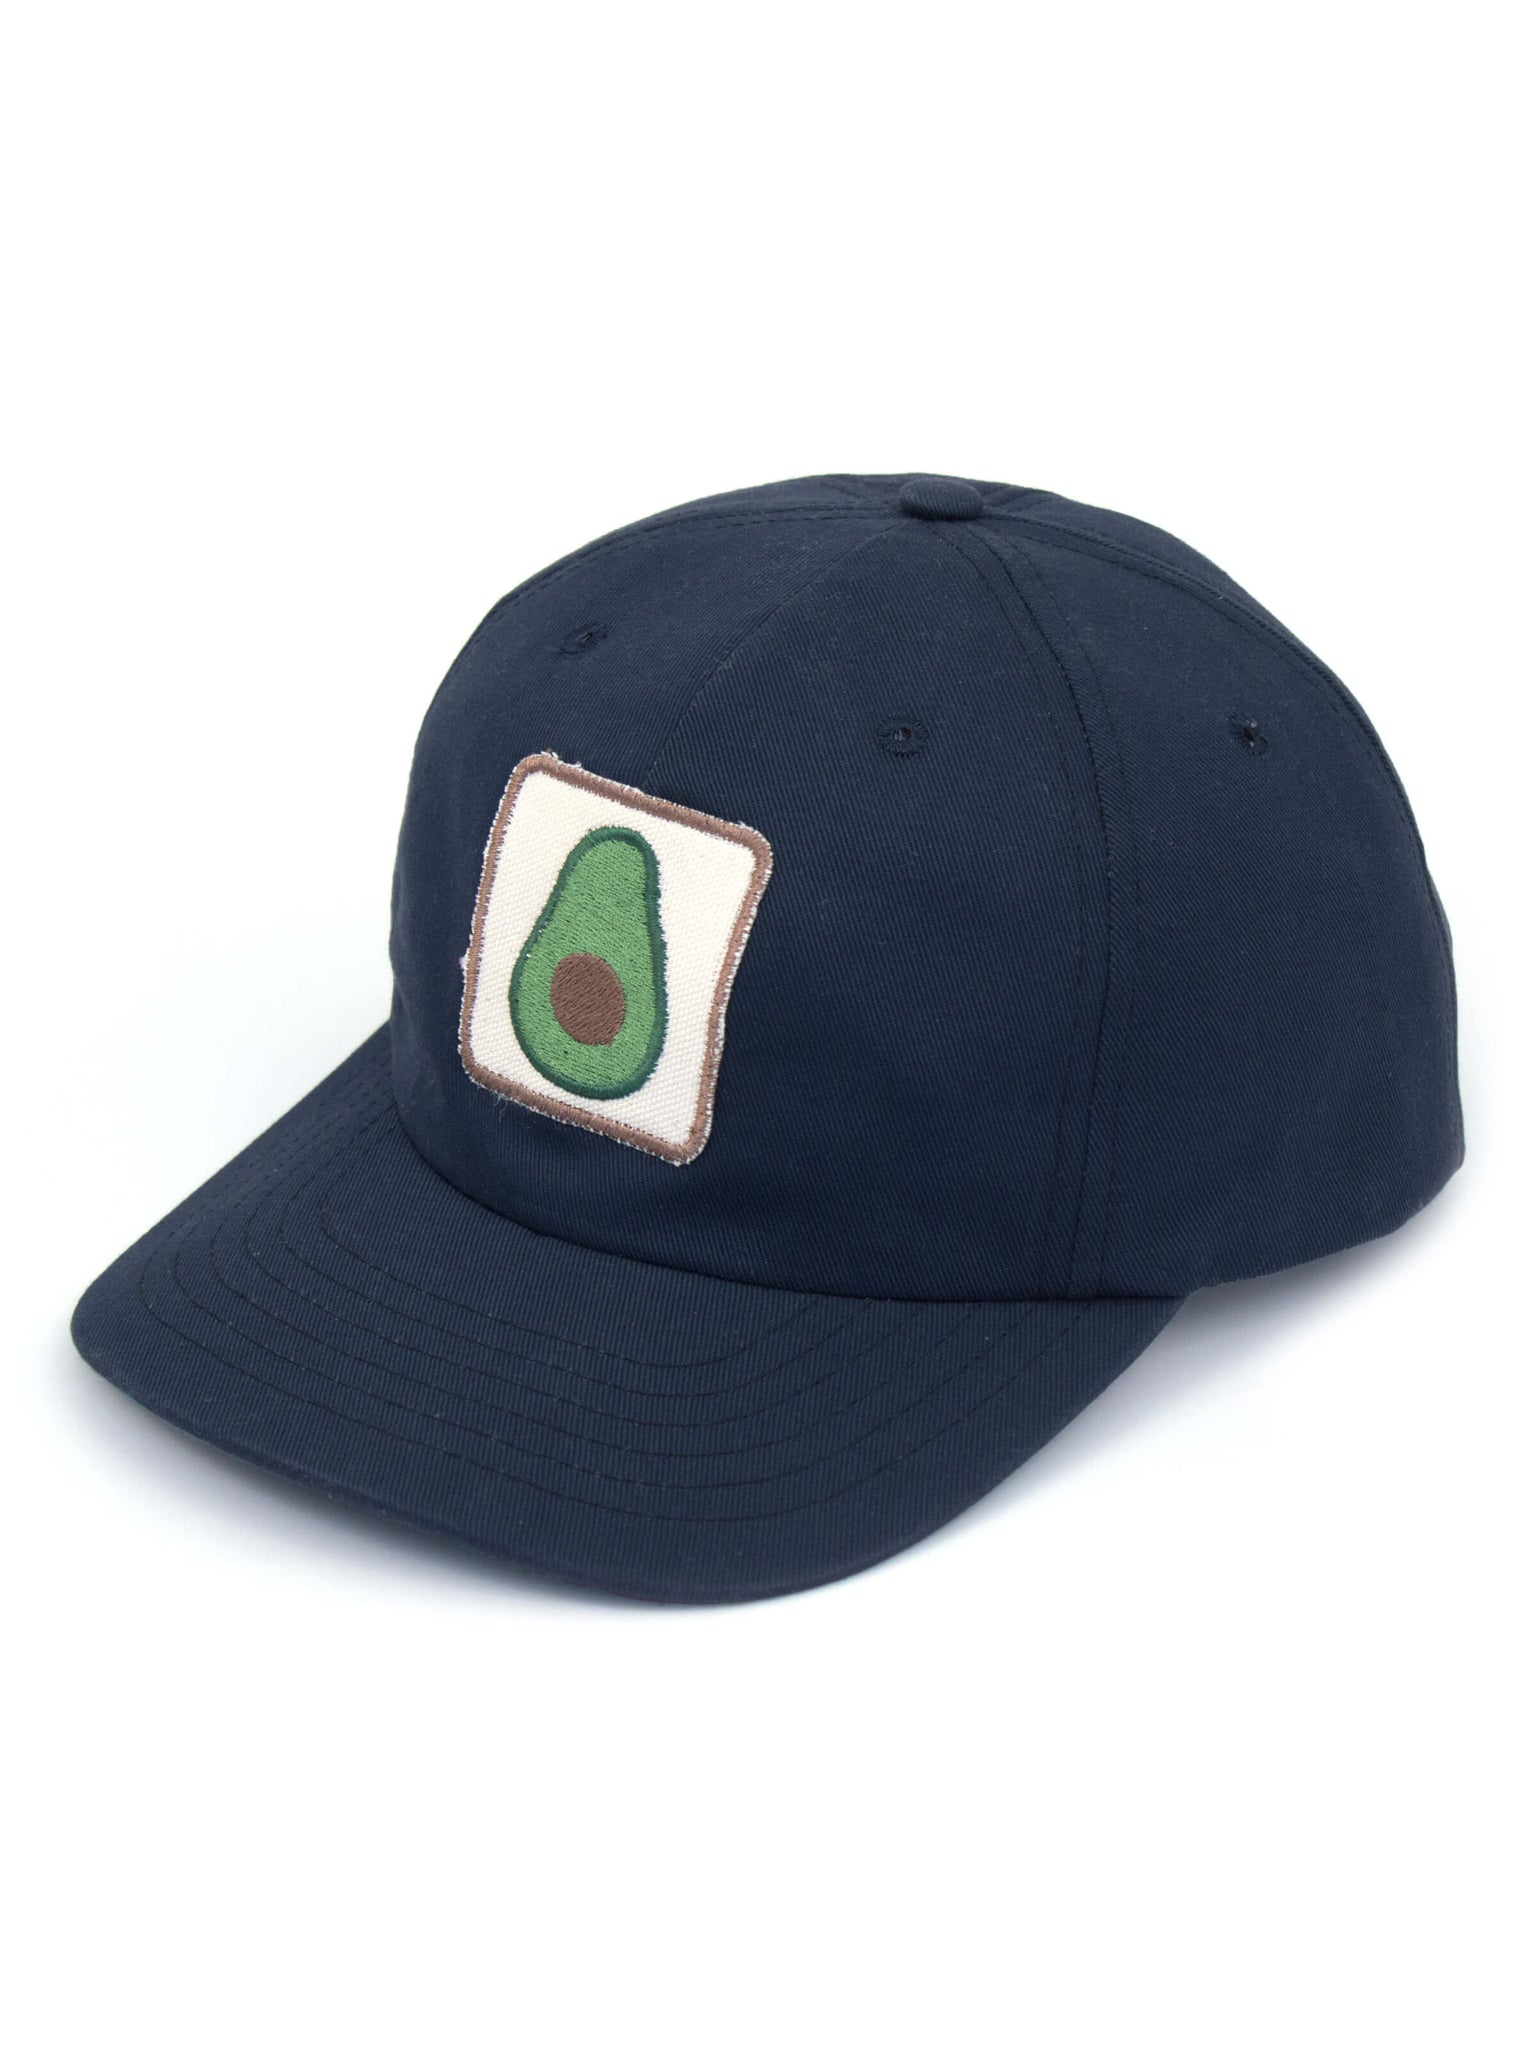 Avocado Patch Hat